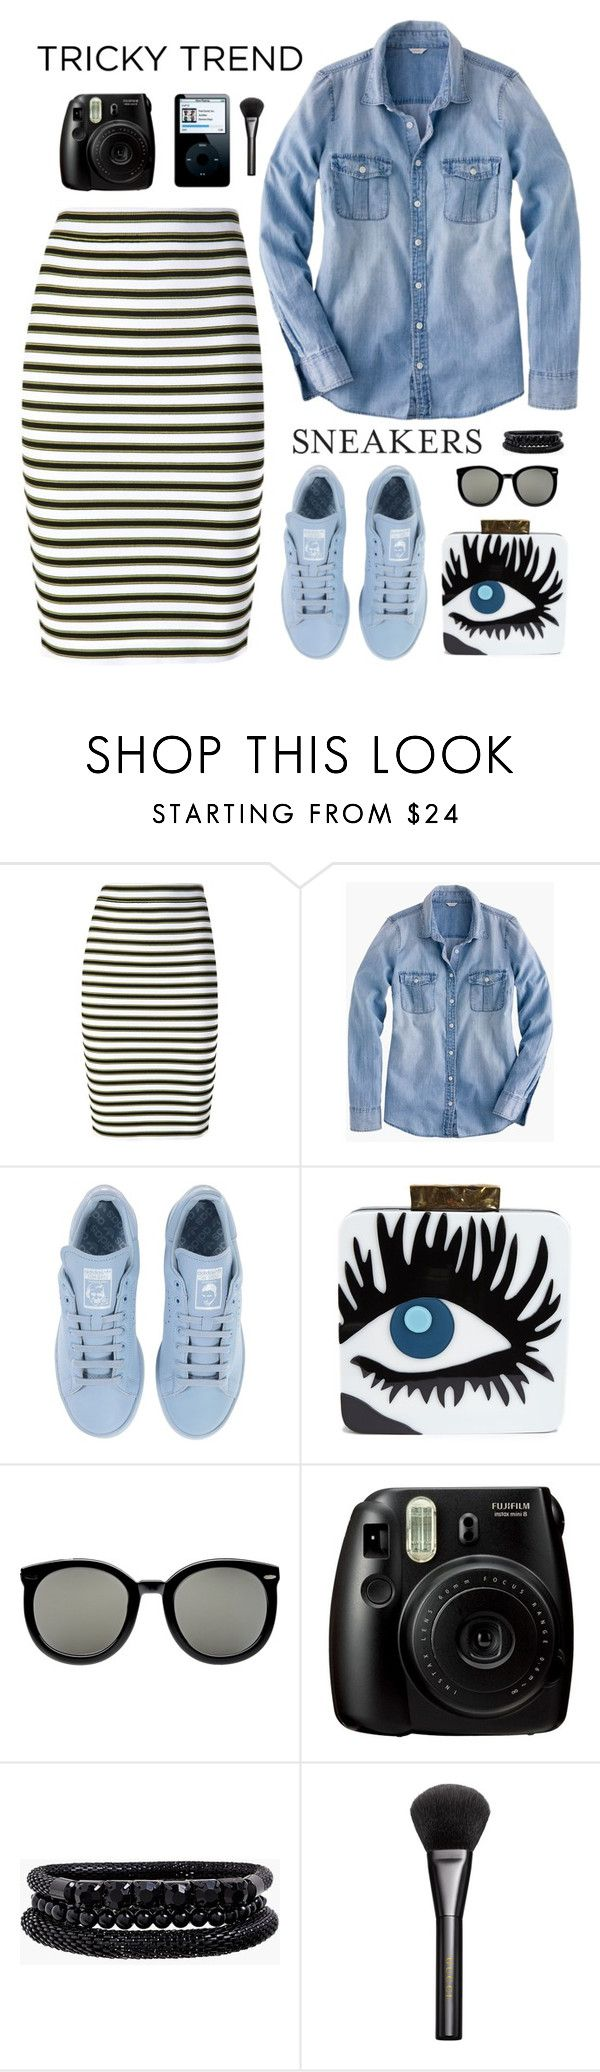 """""""Tricky trend: pencil skirt and sneakers"""" by ellyg91 ❤ liked on Polyvore featuring A.L.C., J.Crew, adidas, Jarre, Karen Walker, Spring Street, Gucci, pencilskirt, contestentry and polyvoreeditorial"""